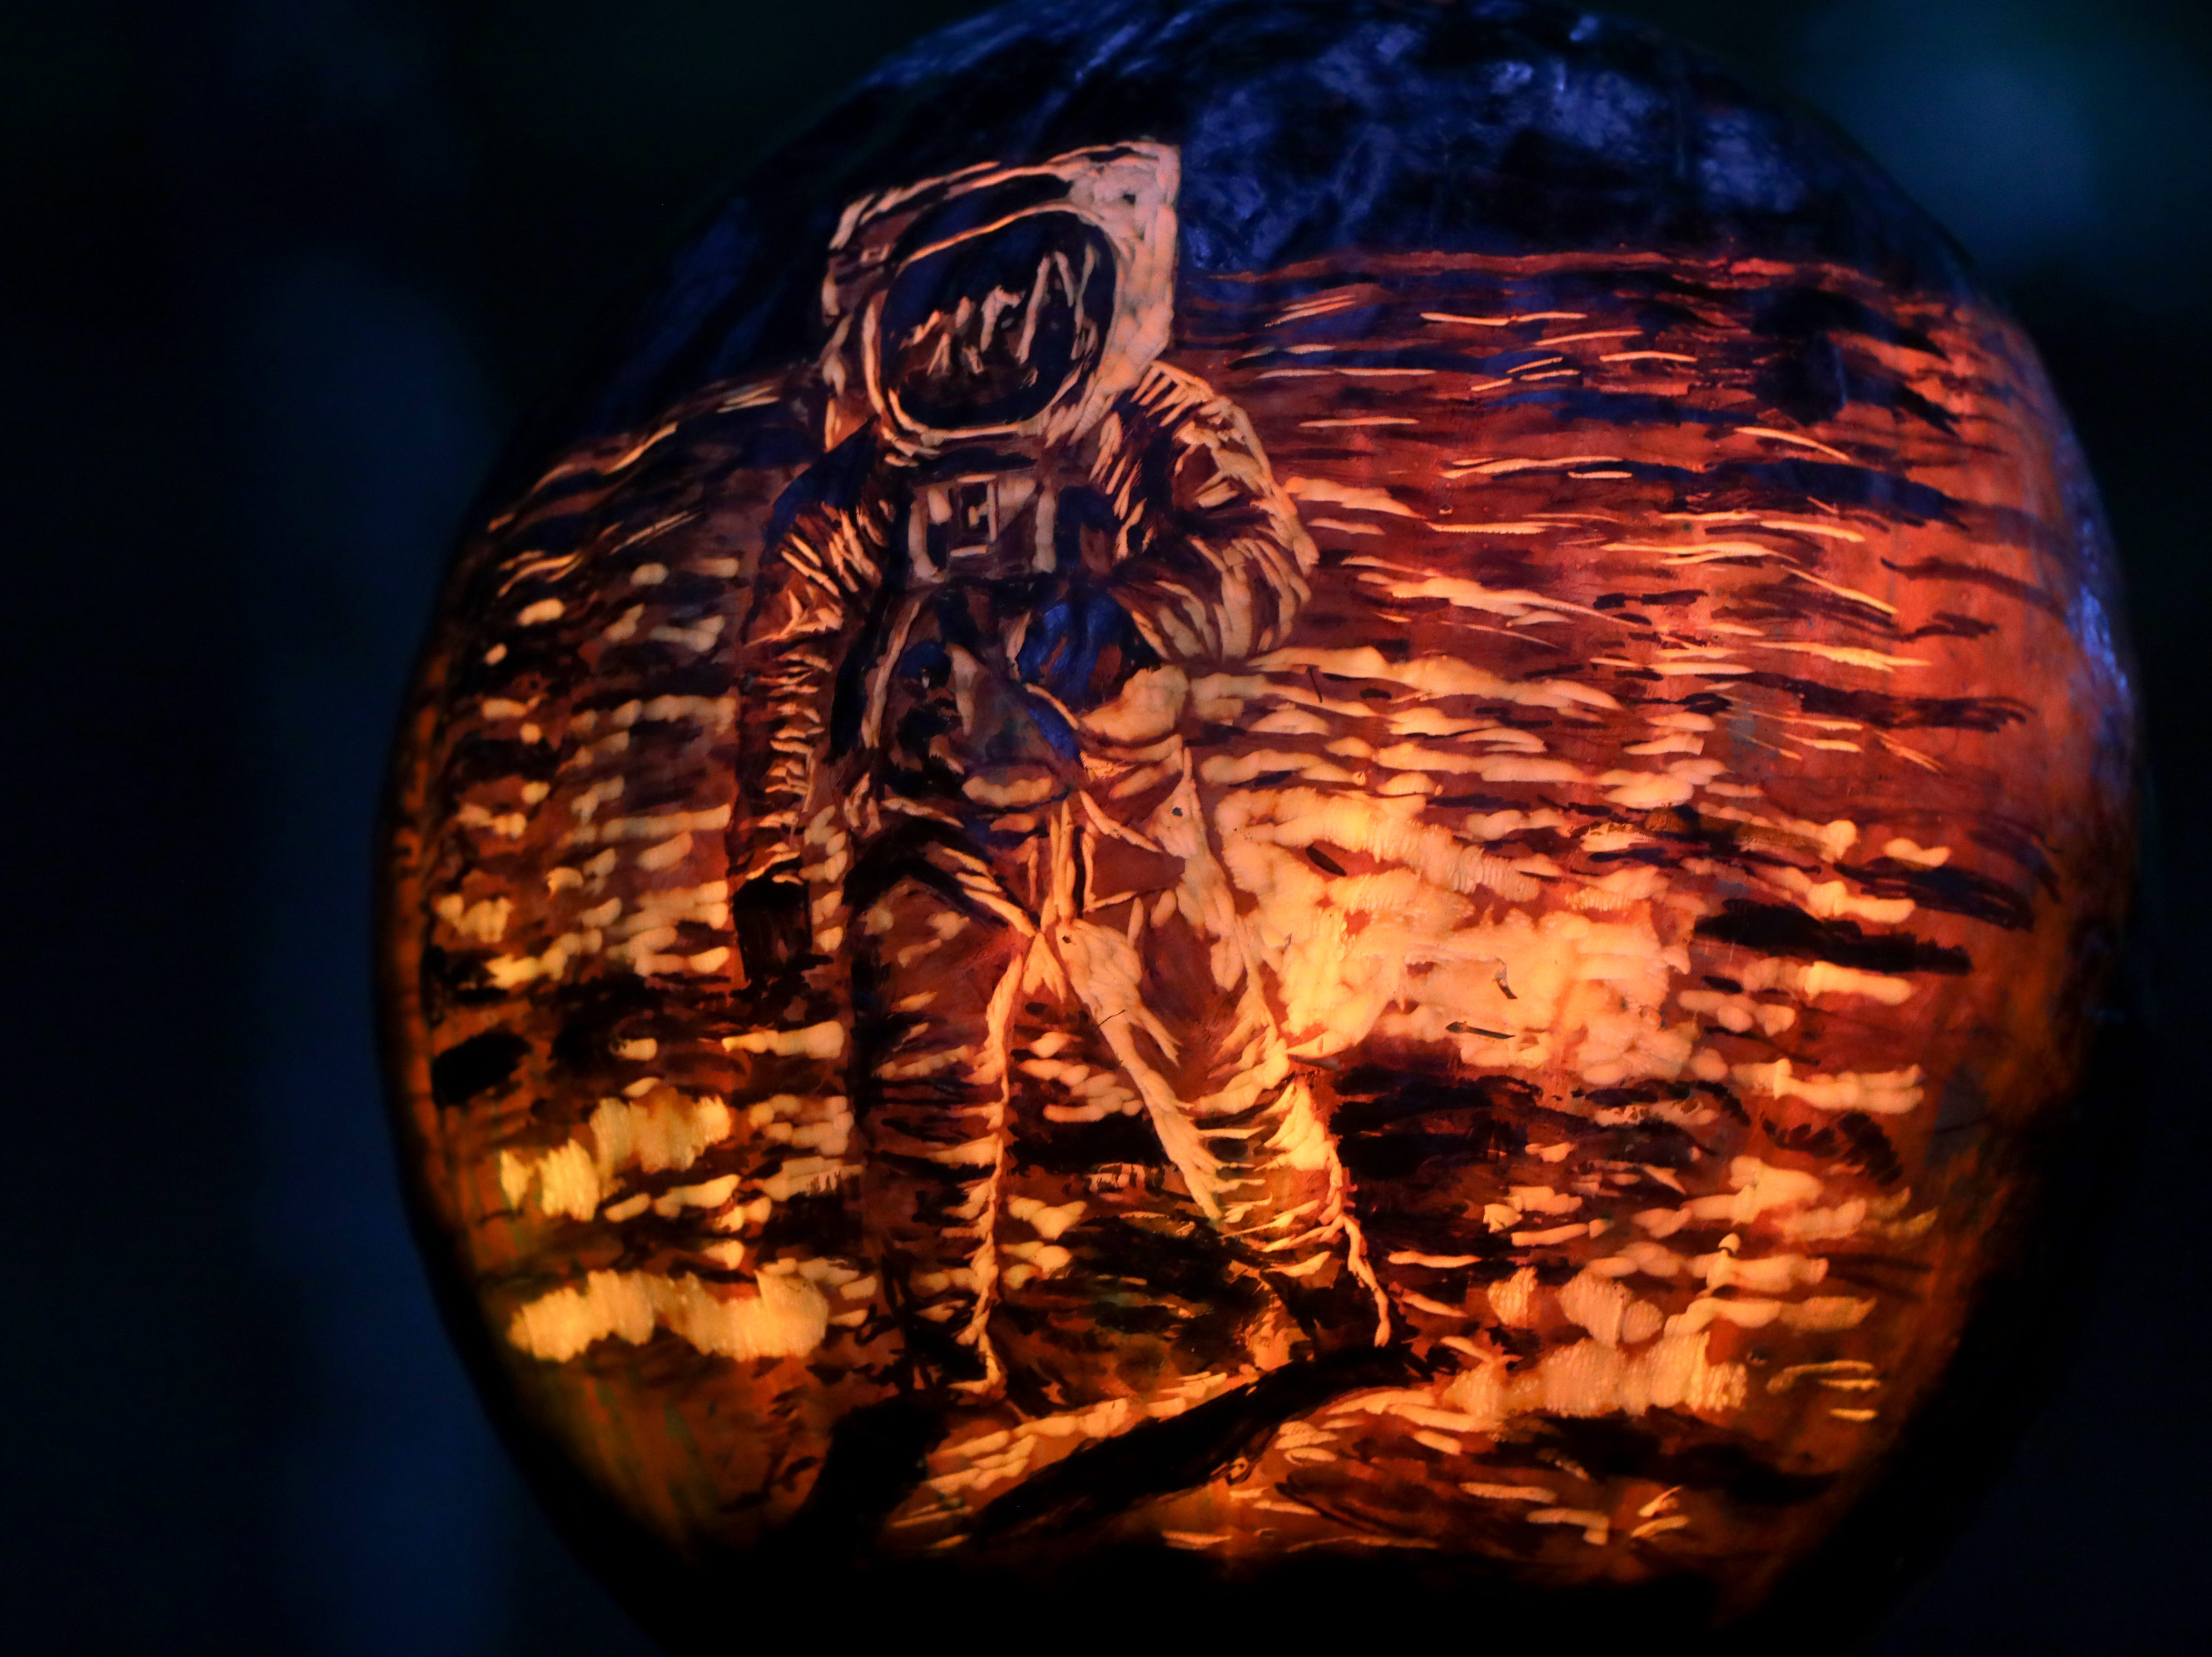 Neil Armstrong appears on a pumpkin at this year's Jack O' Lantern Spectacular. Oct. 9, 2018